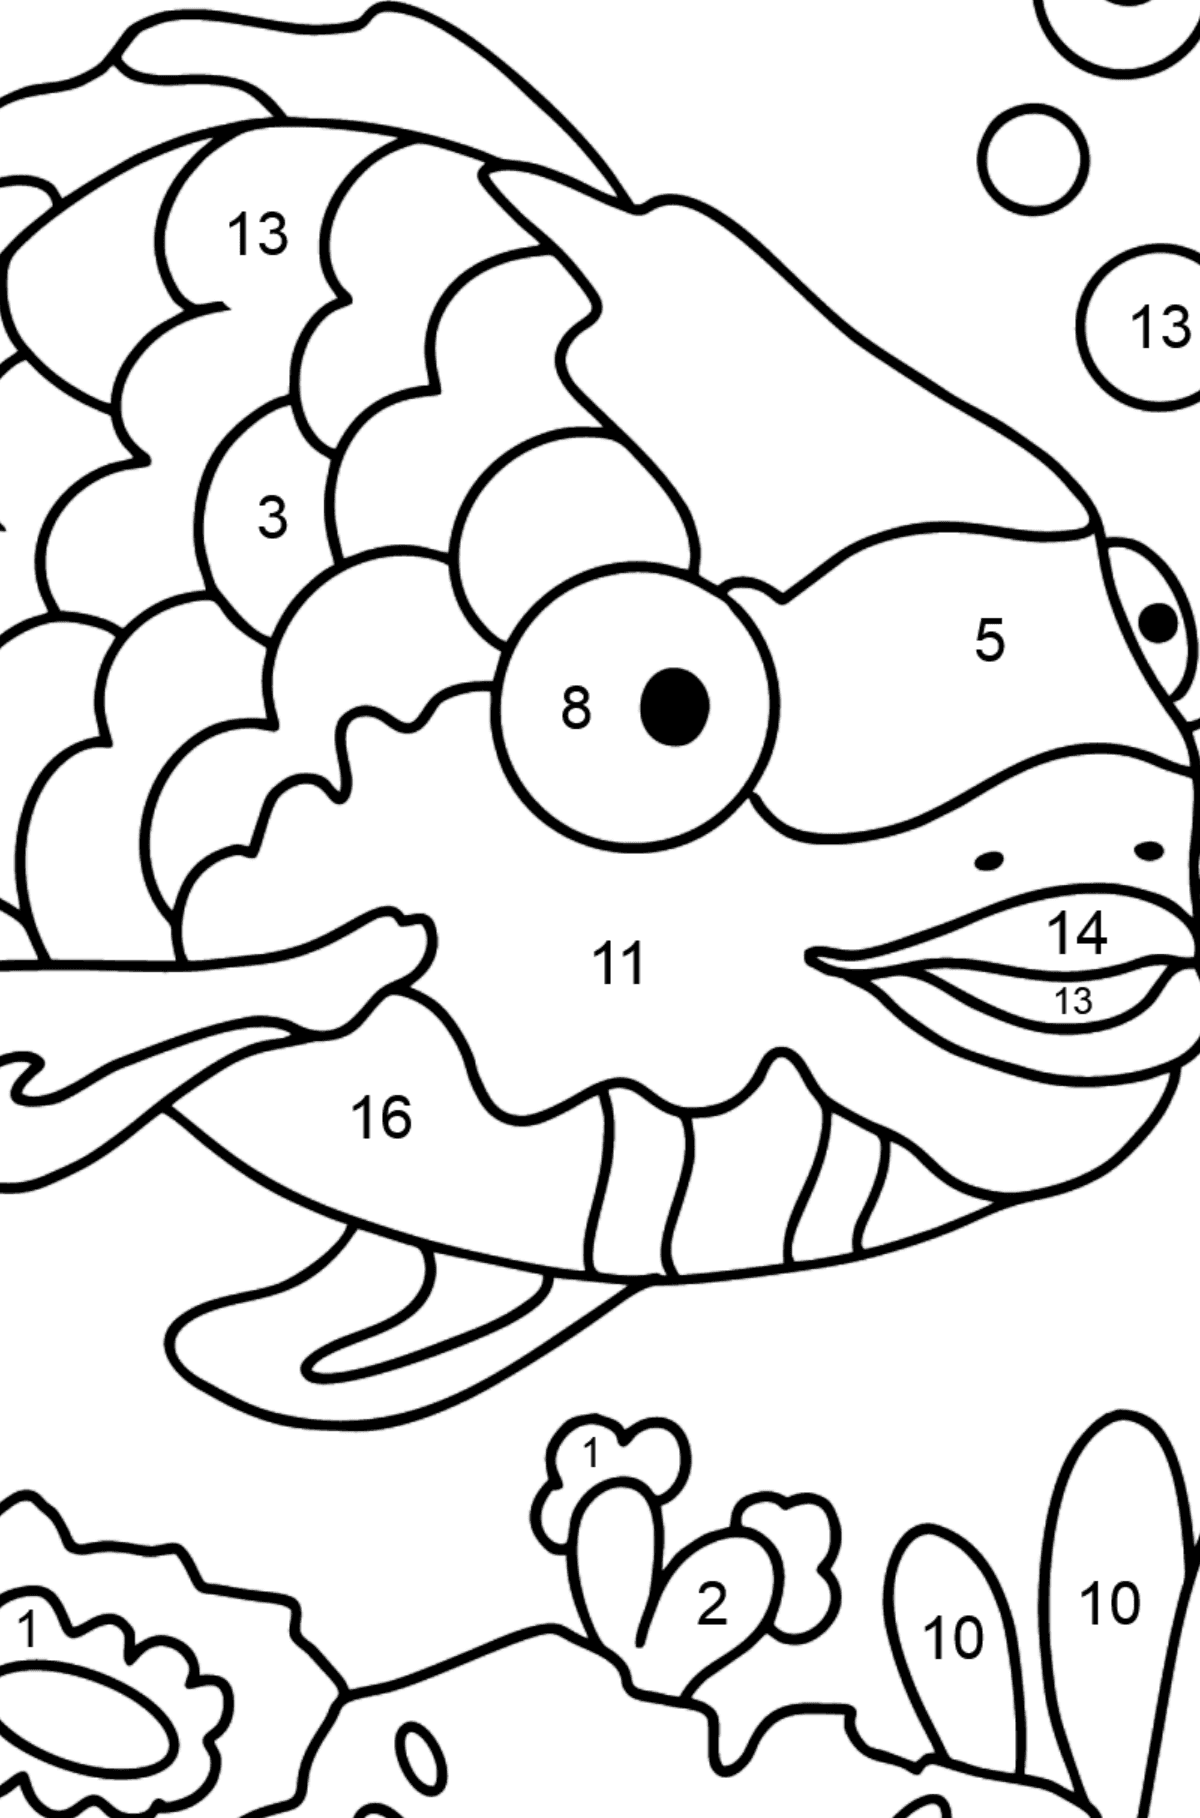 Coloring Page - A Fish with Beautiful Scales - Coloring by Numbers for Kids